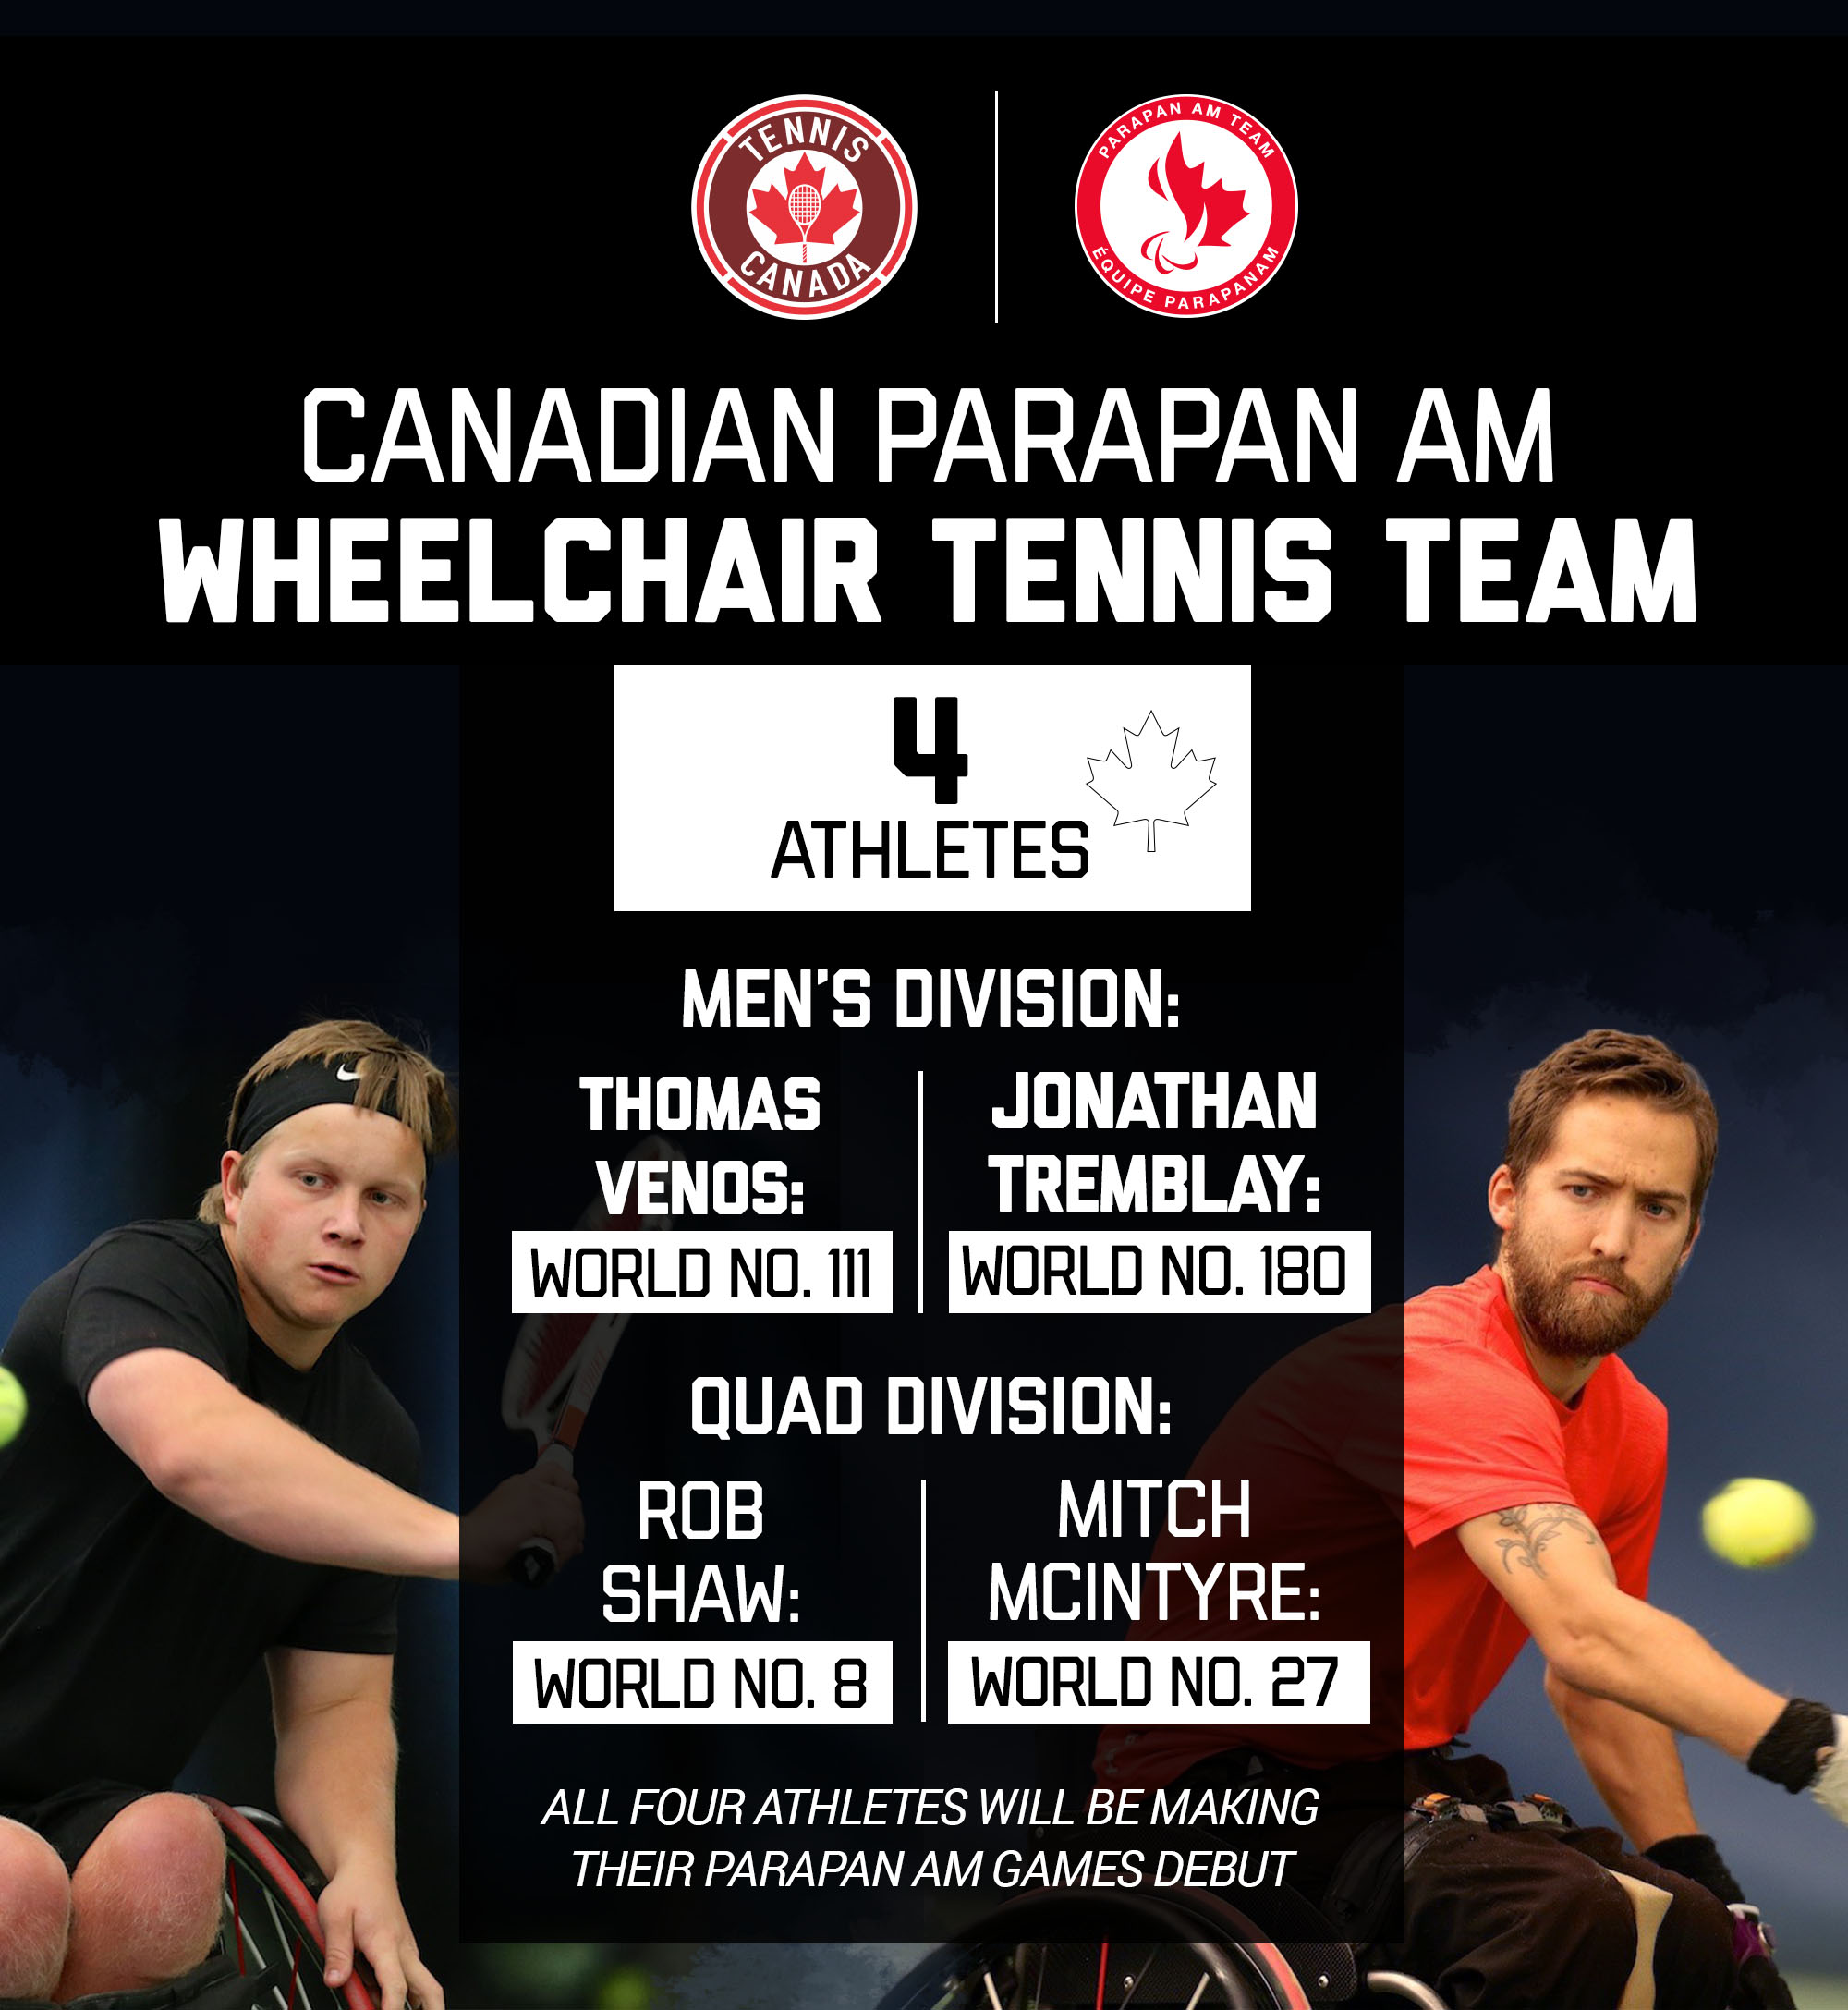 A graphic showing the make-up of the Canadian Parapan Am Wheelchair Tennis Team.